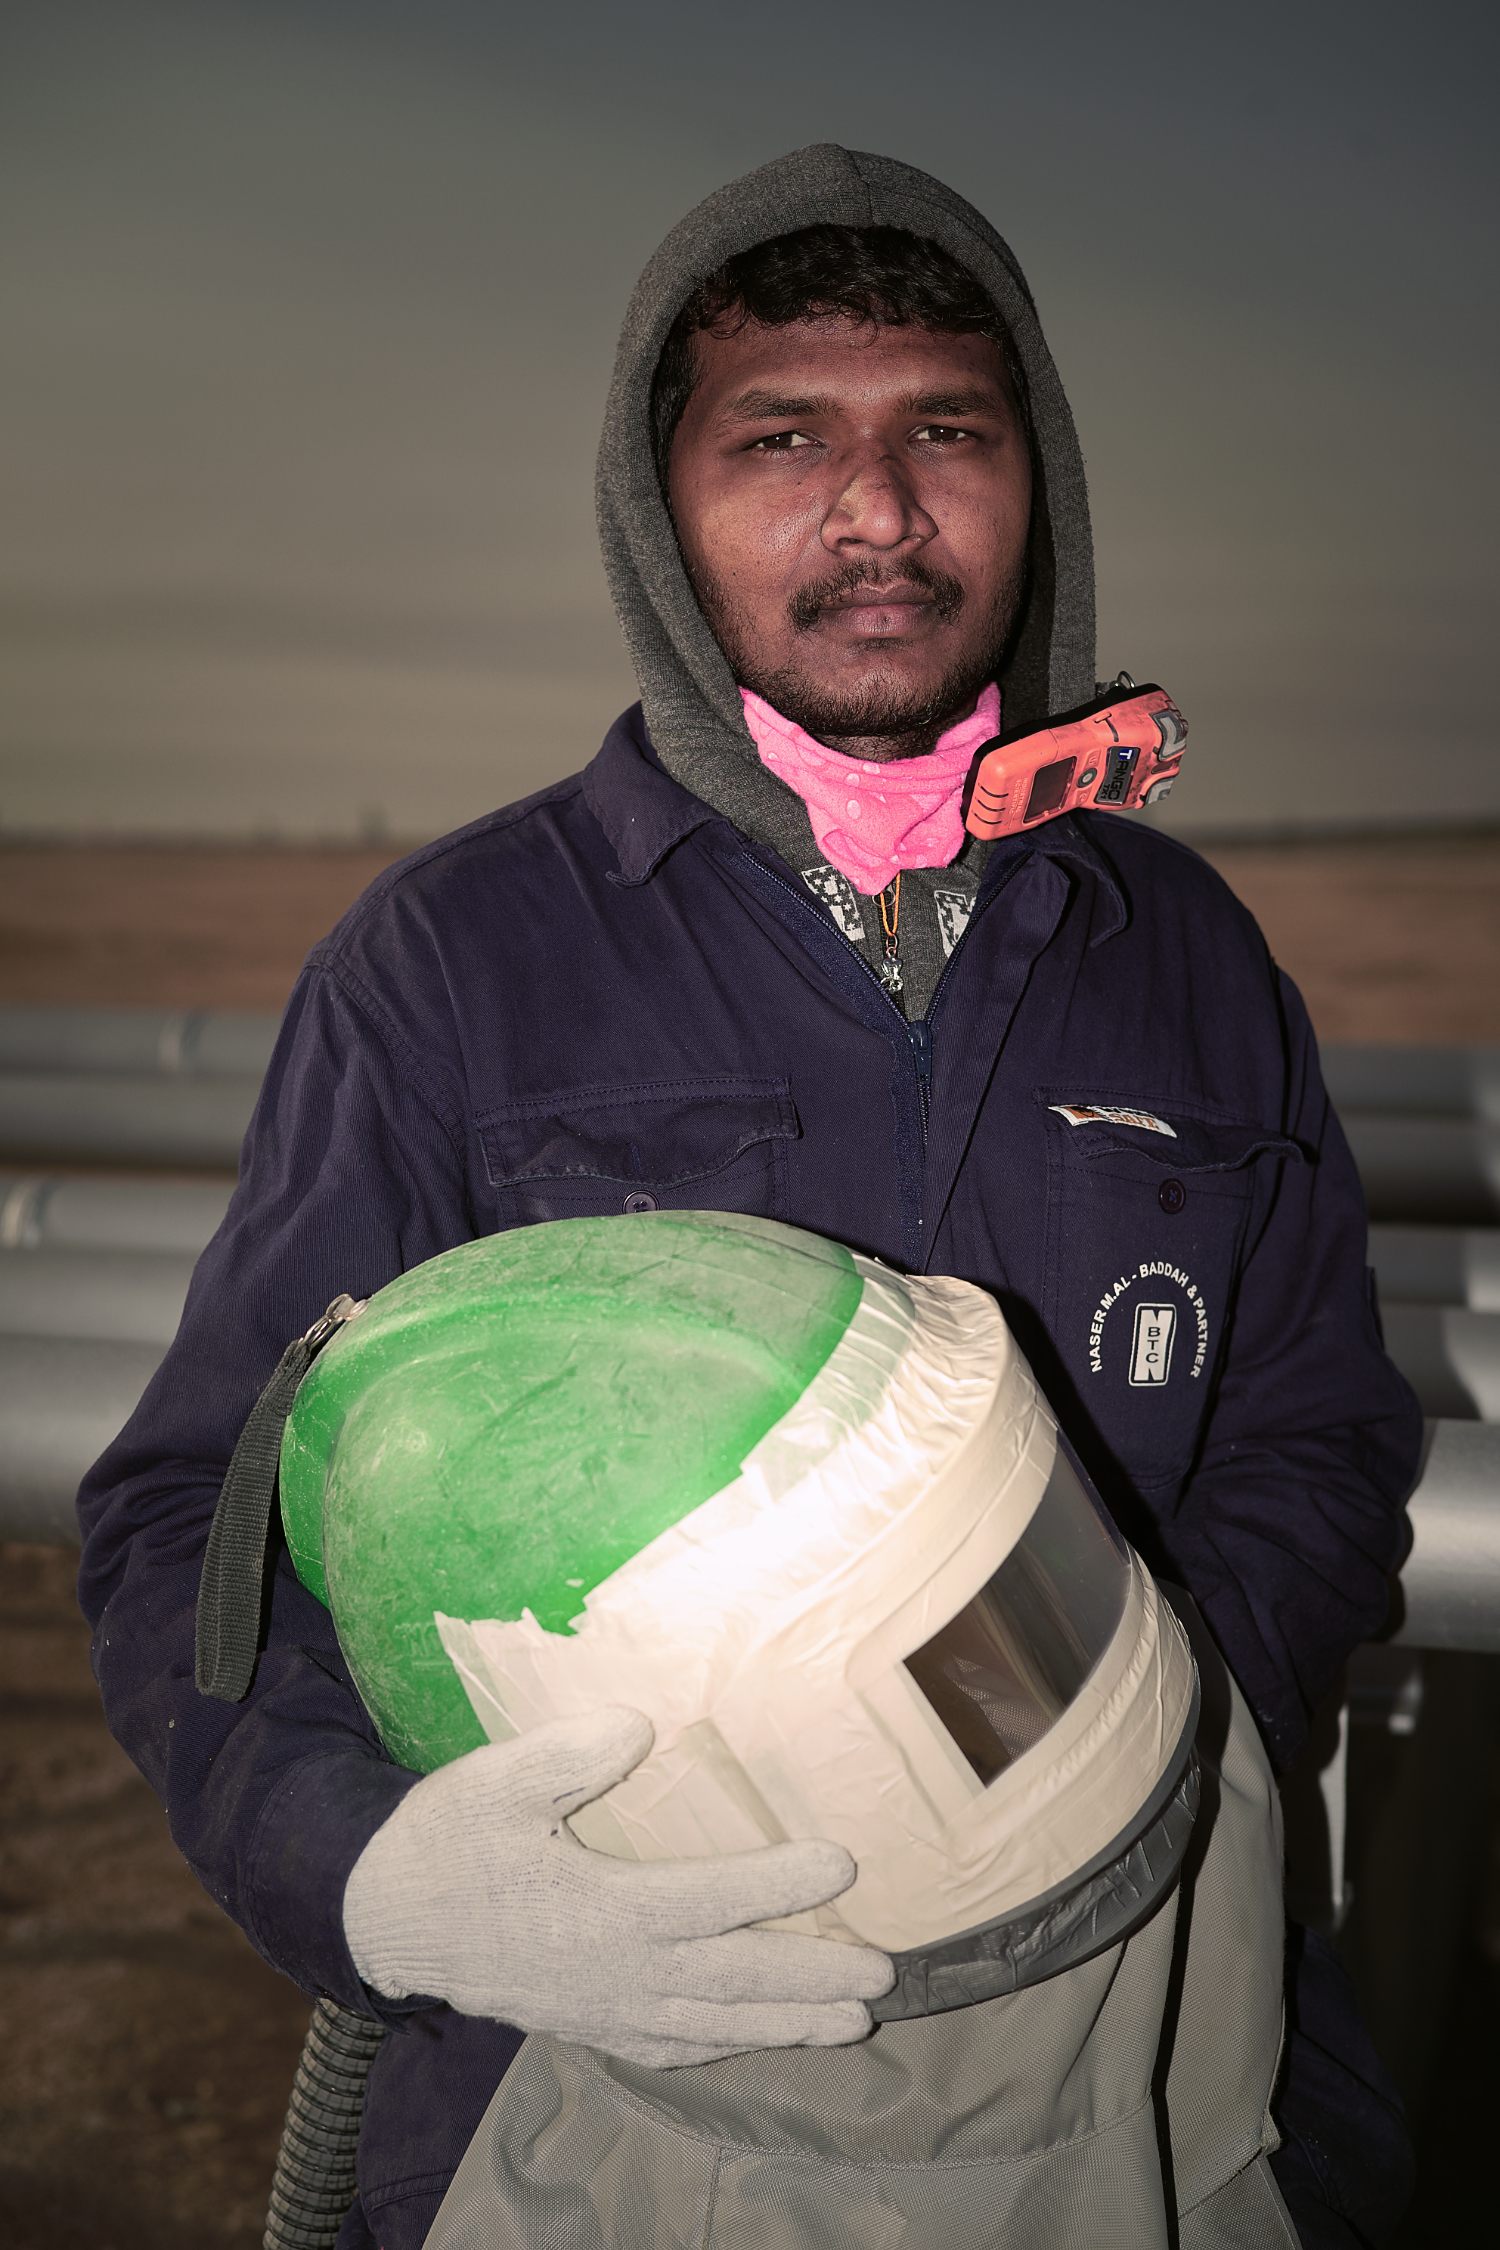 Dasharath Humnabade, 22 y/o, Painter/Grit Blaster   Dasharath is from Ghaborael, India. He left home at 18 to support his family income which currently comes from farming. His ambition is to do the best he can and one day be a Supervisor.  The orange device near his chin is a carbon monoxide monitor used to make sure that the air coming inside the helmet is safe to breath.